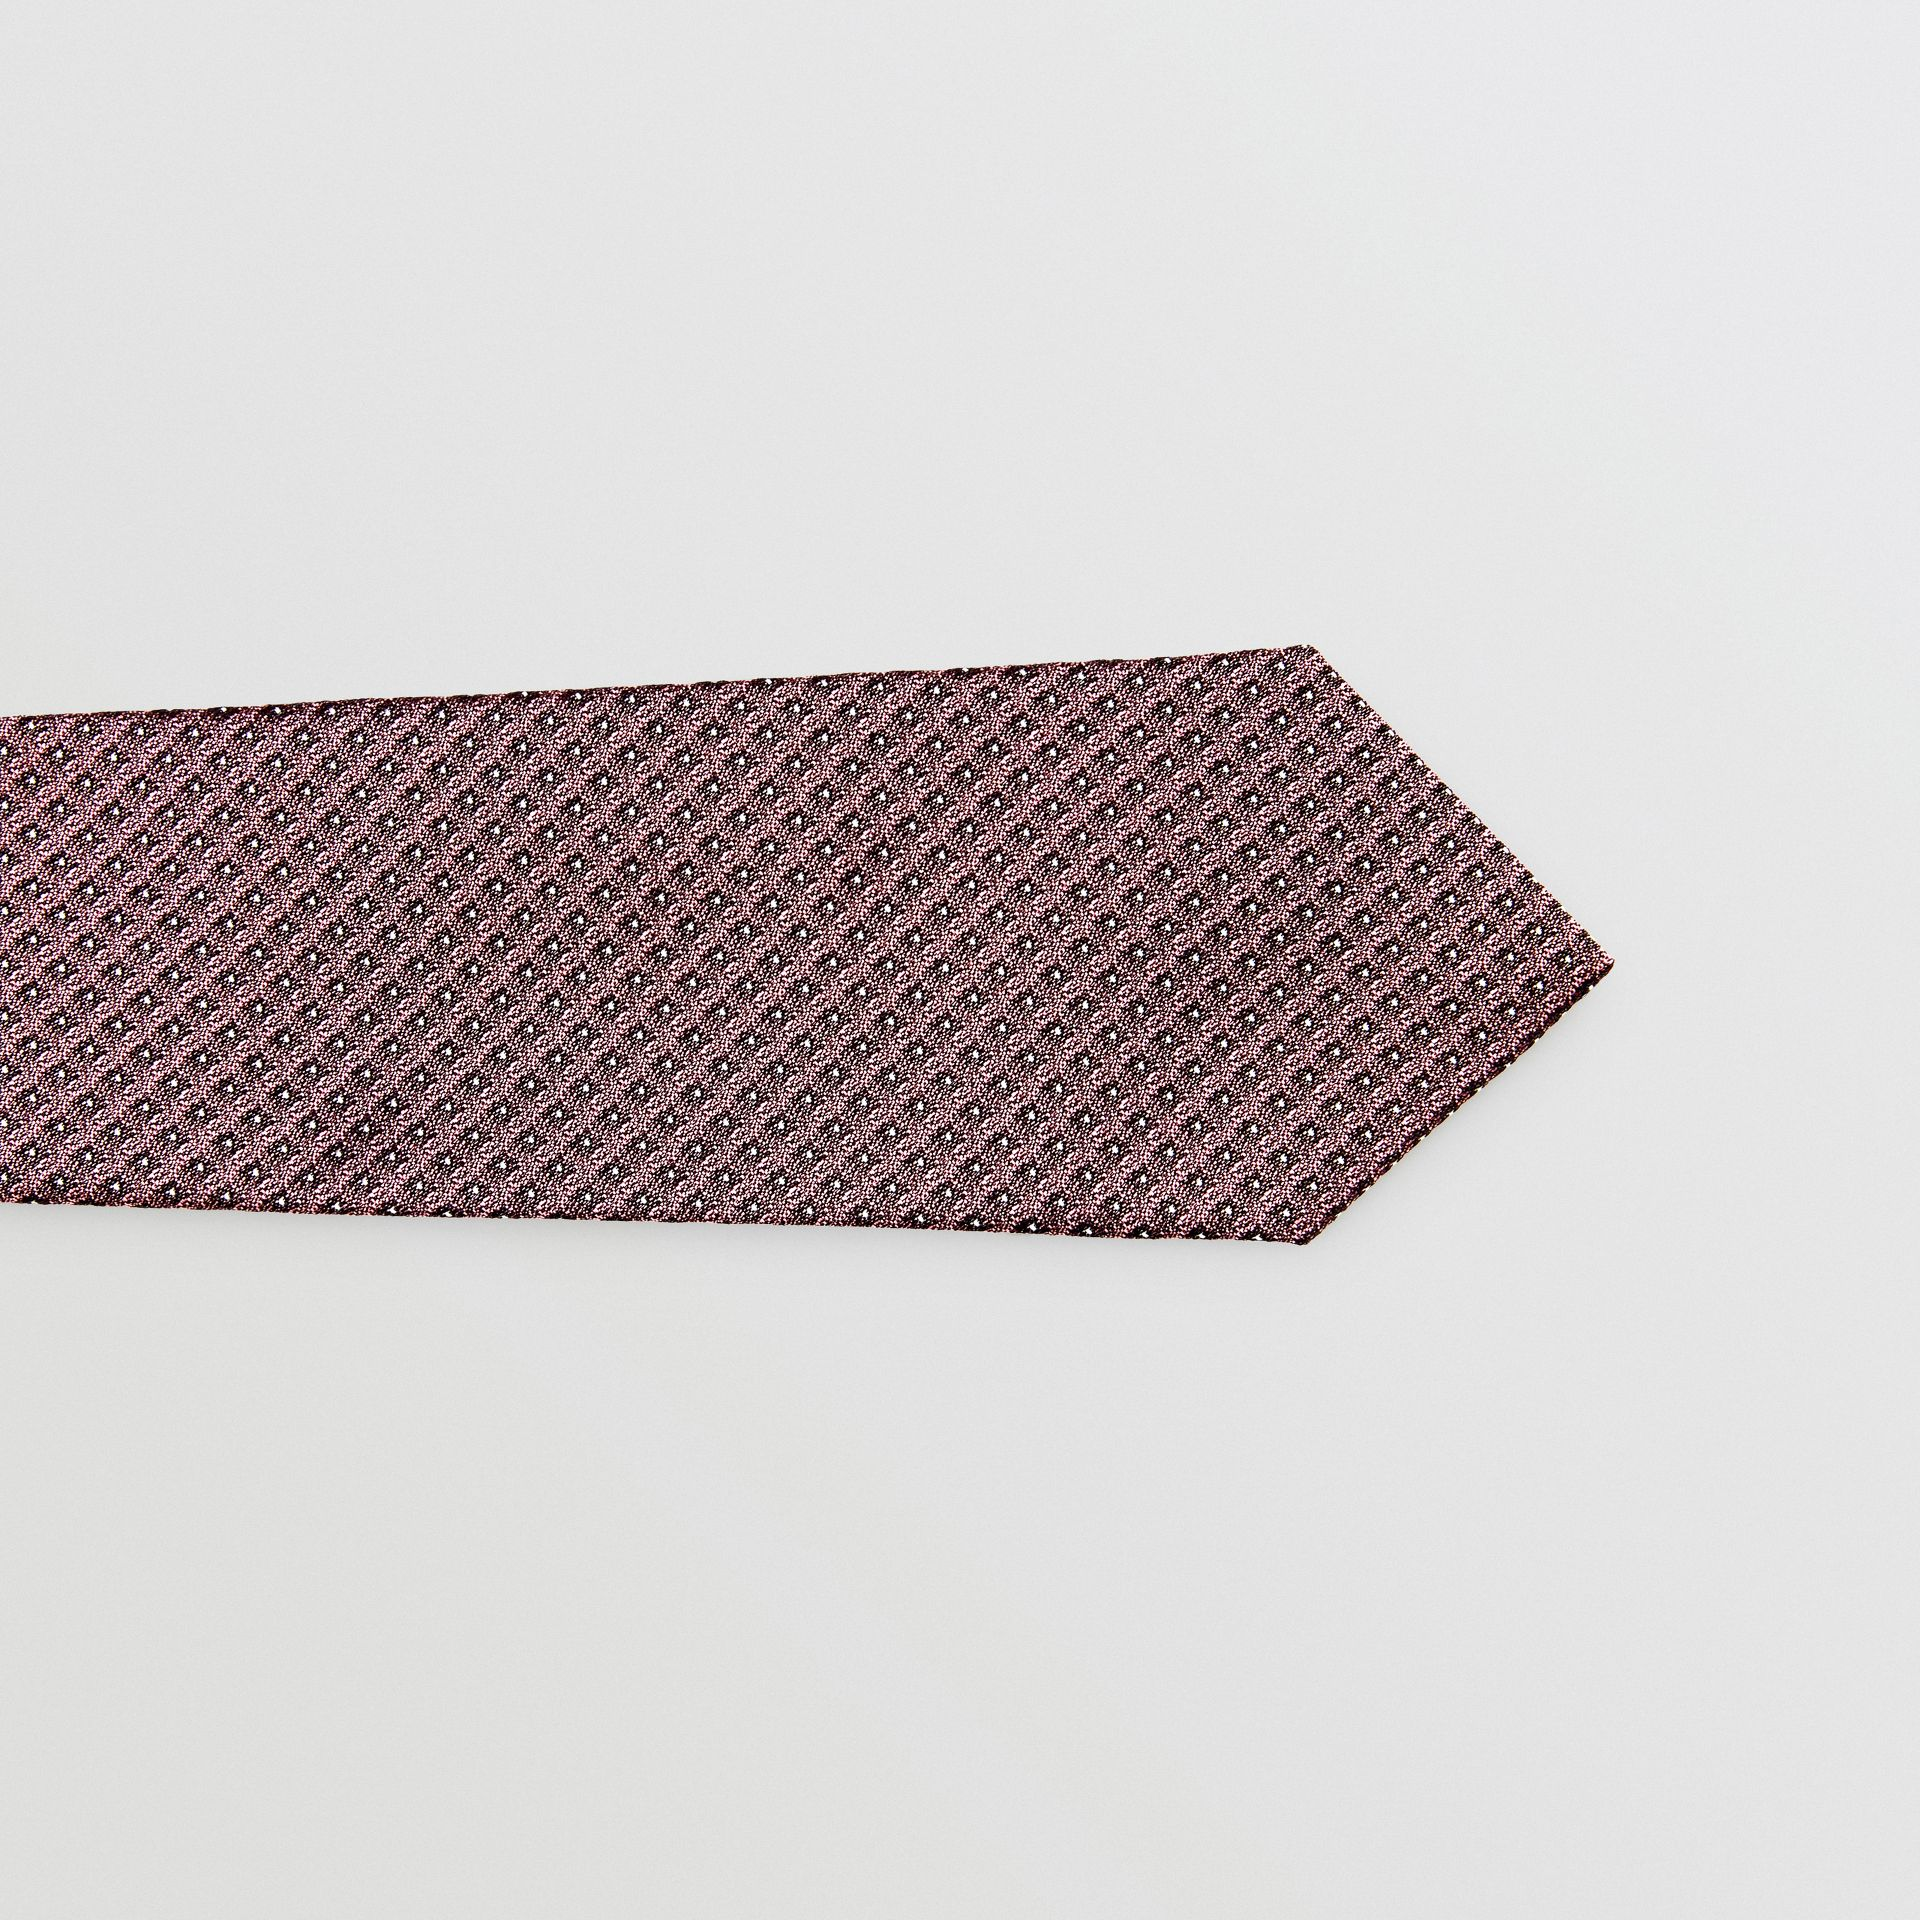 Classic Cut Micro Dot Silk Jacquard Tie in Garnet Pink - Men | Burberry United Kingdom - gallery image 1